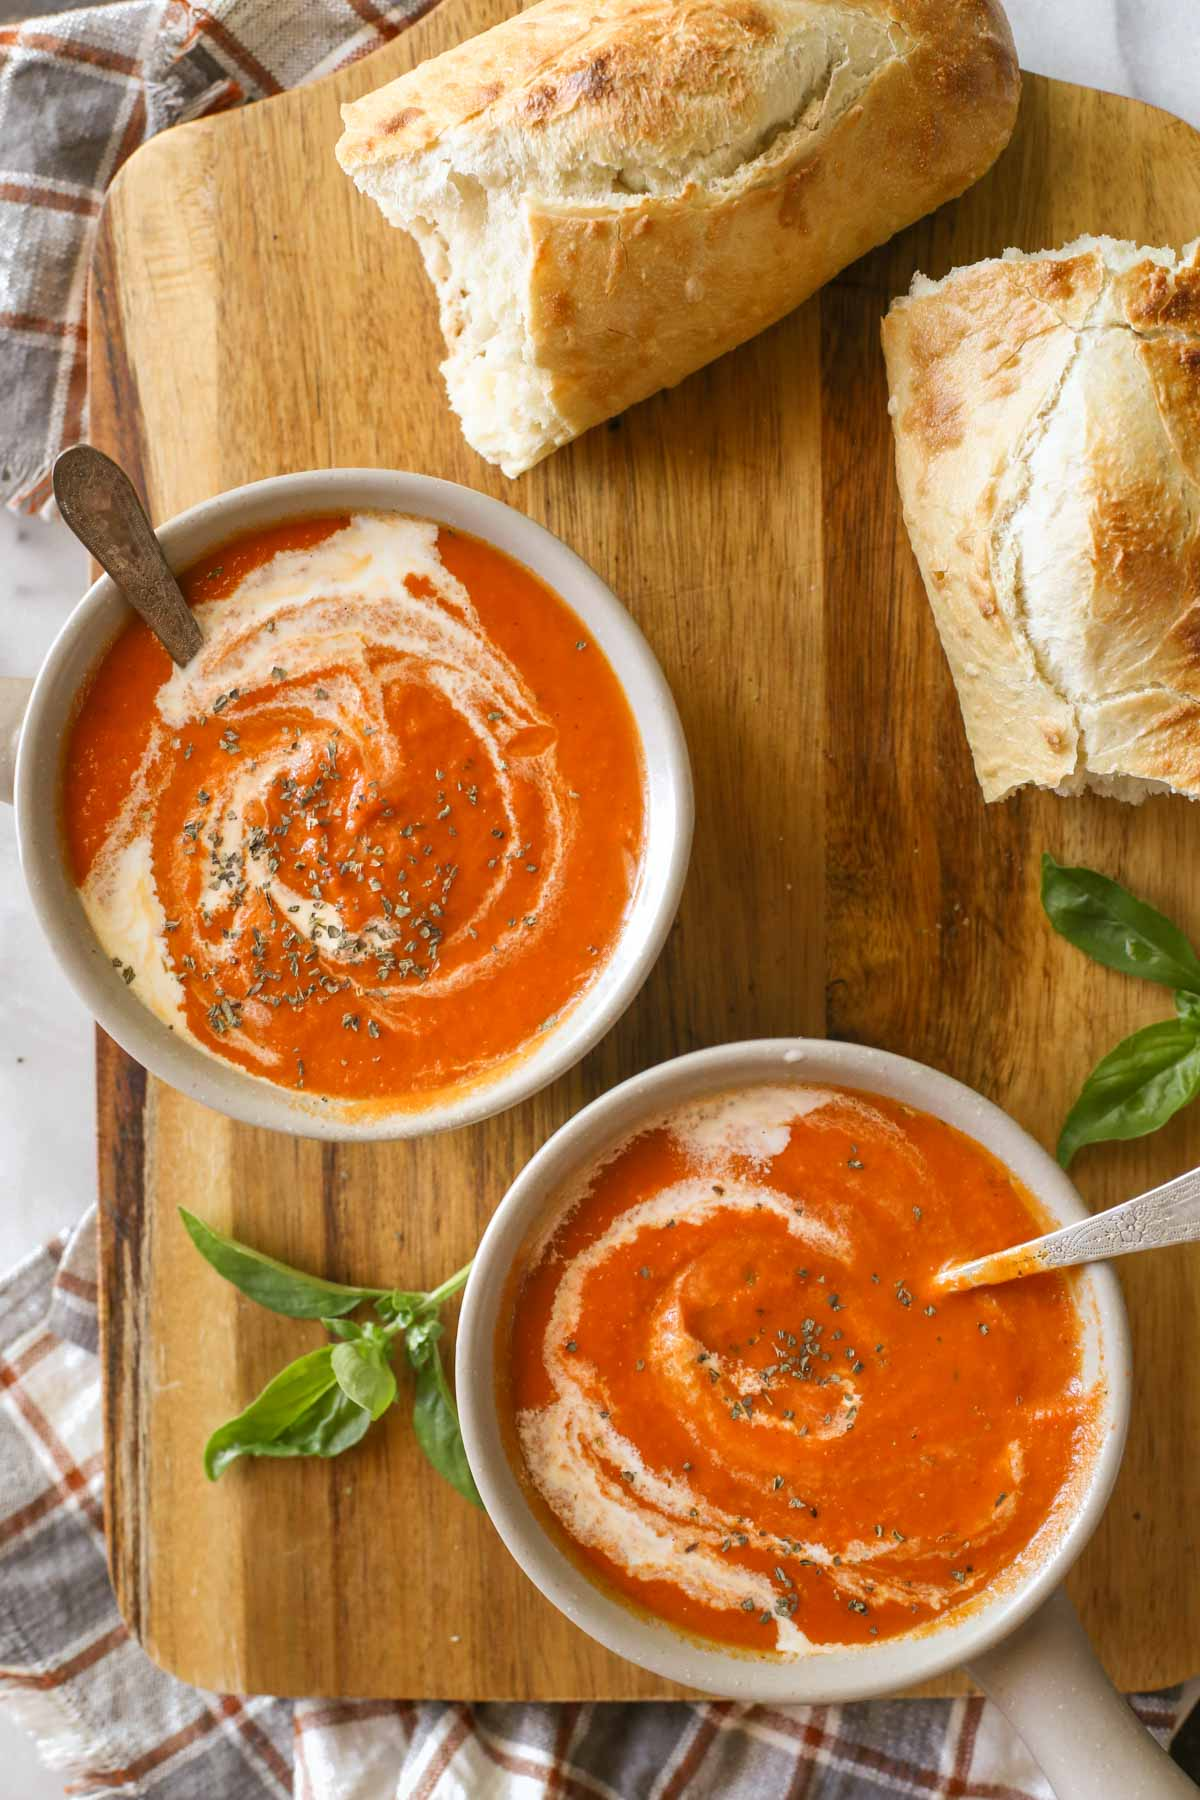 Overhead shot of two bowls of Creamy Balsamic Tomato Soup on a wood cutting board, along with two pieces of torn crusty bread.